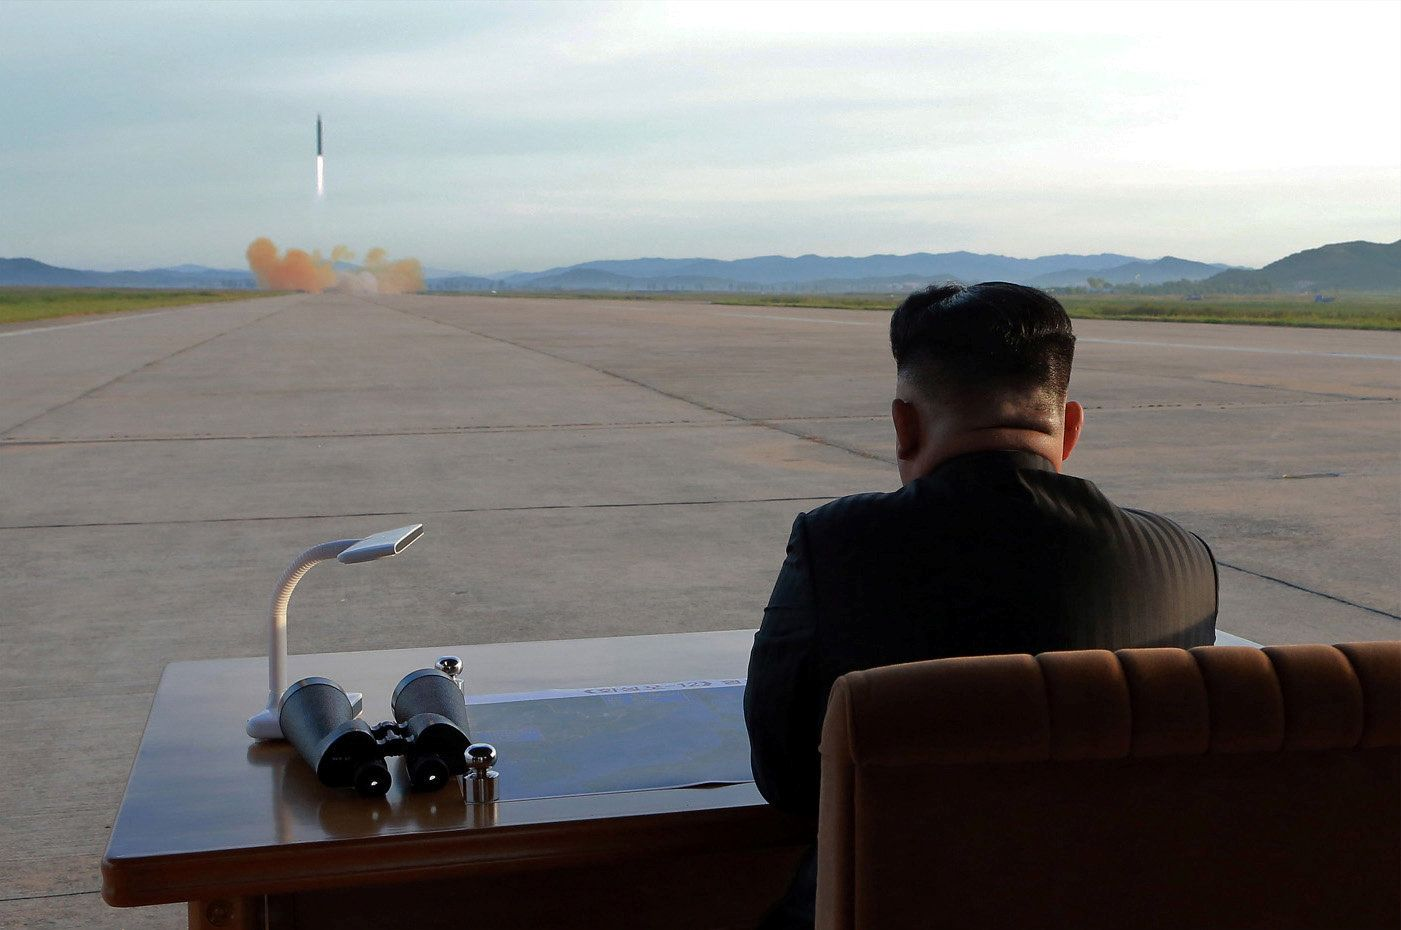 North Korean leader Kim Jong Un watches the launch of a Hwasong-12 missile in this undated photo released by North Korea's Korean Central News Agency (KCNA) on September 16, 2017. KCNA via REUTERS   ATTENTION EDITORS - THIS PICTURE WAS PROVIDED BY A THIRD PARTY. REUTERS IS UNABLE TO INDEPENDENTLY VERIFY THE AUTHENTICITY, CONTENT, LOCATION OR DATE OF THIS IMAGE. NO THIRD PARTY SALES. SOUTH KOREA OUT.